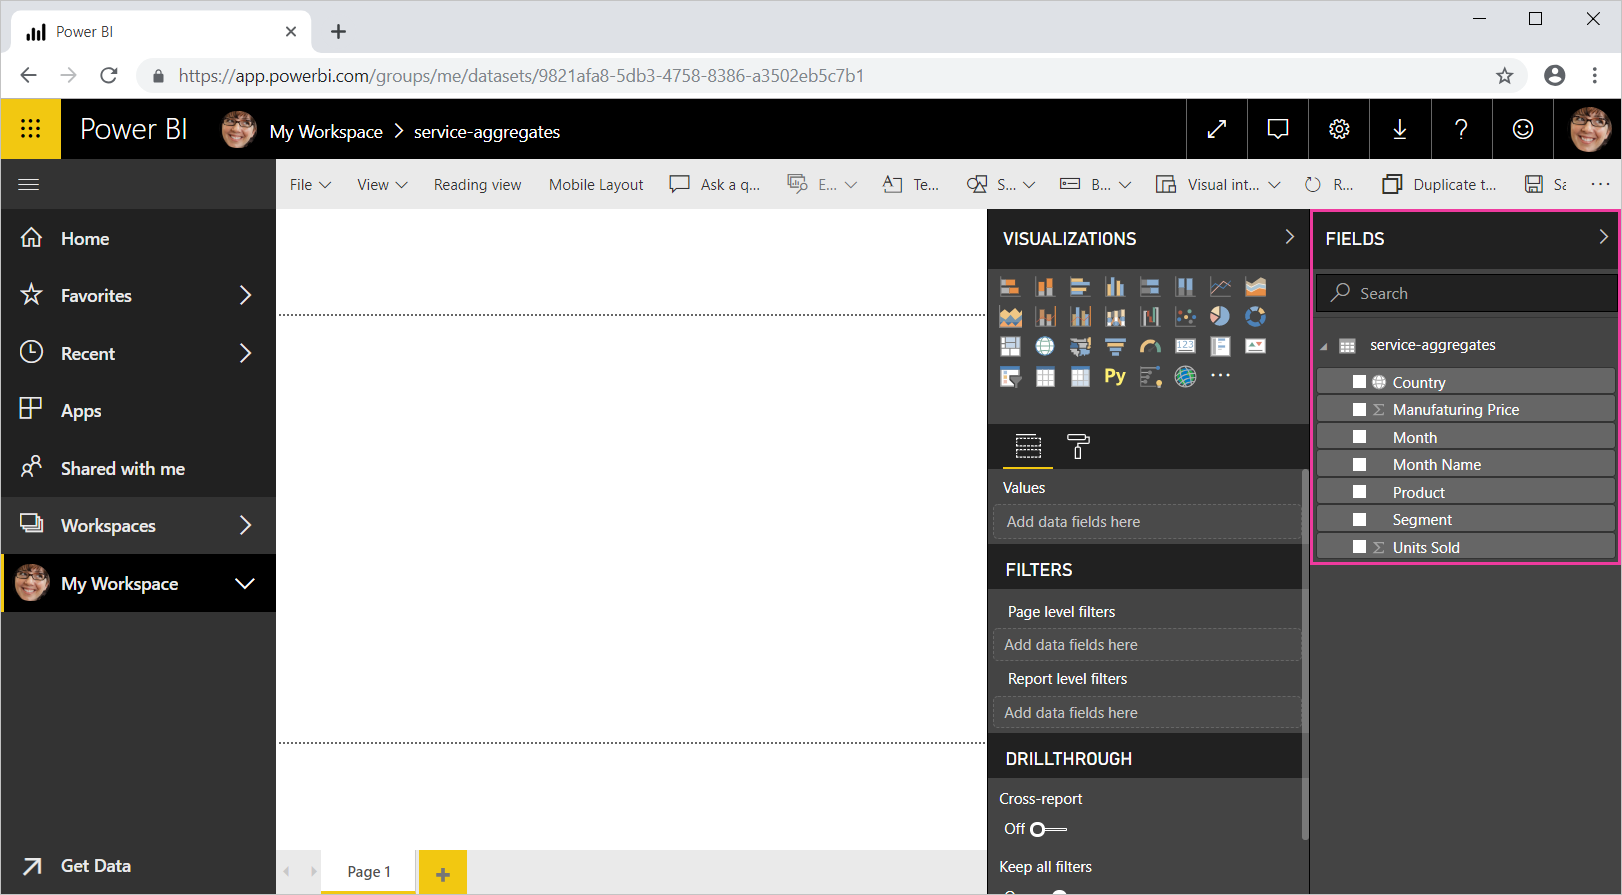 Screenshot of Power BI with the Fields list called out.